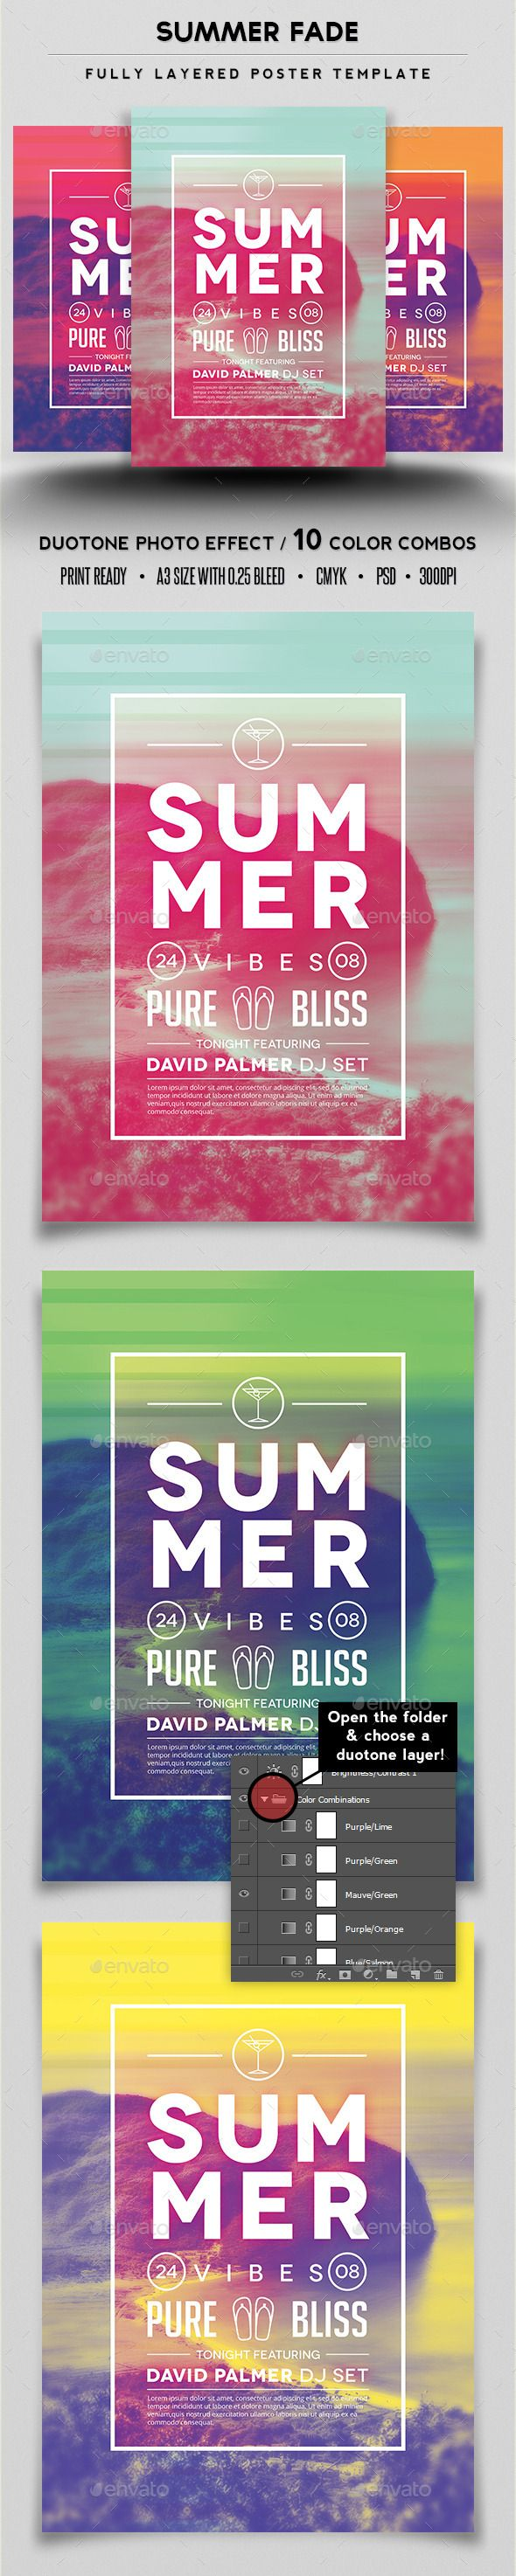 Summer Fade Poster Template #design Download: http://graphicriver.net/item/summer-fade-poster-template/12751977?ref=ksioks